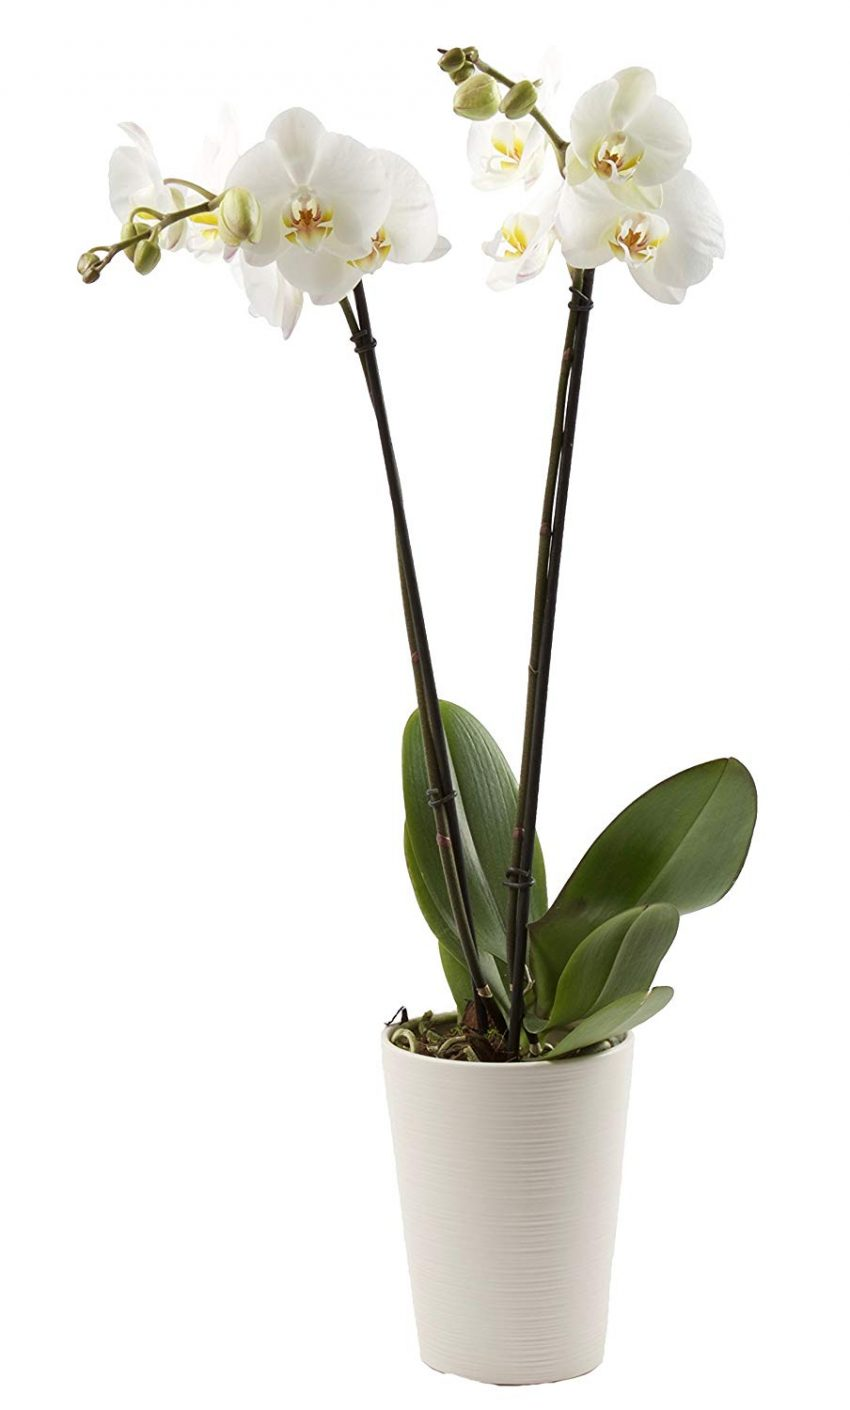 20 Christmas Gifts for Coworkers - Orchids